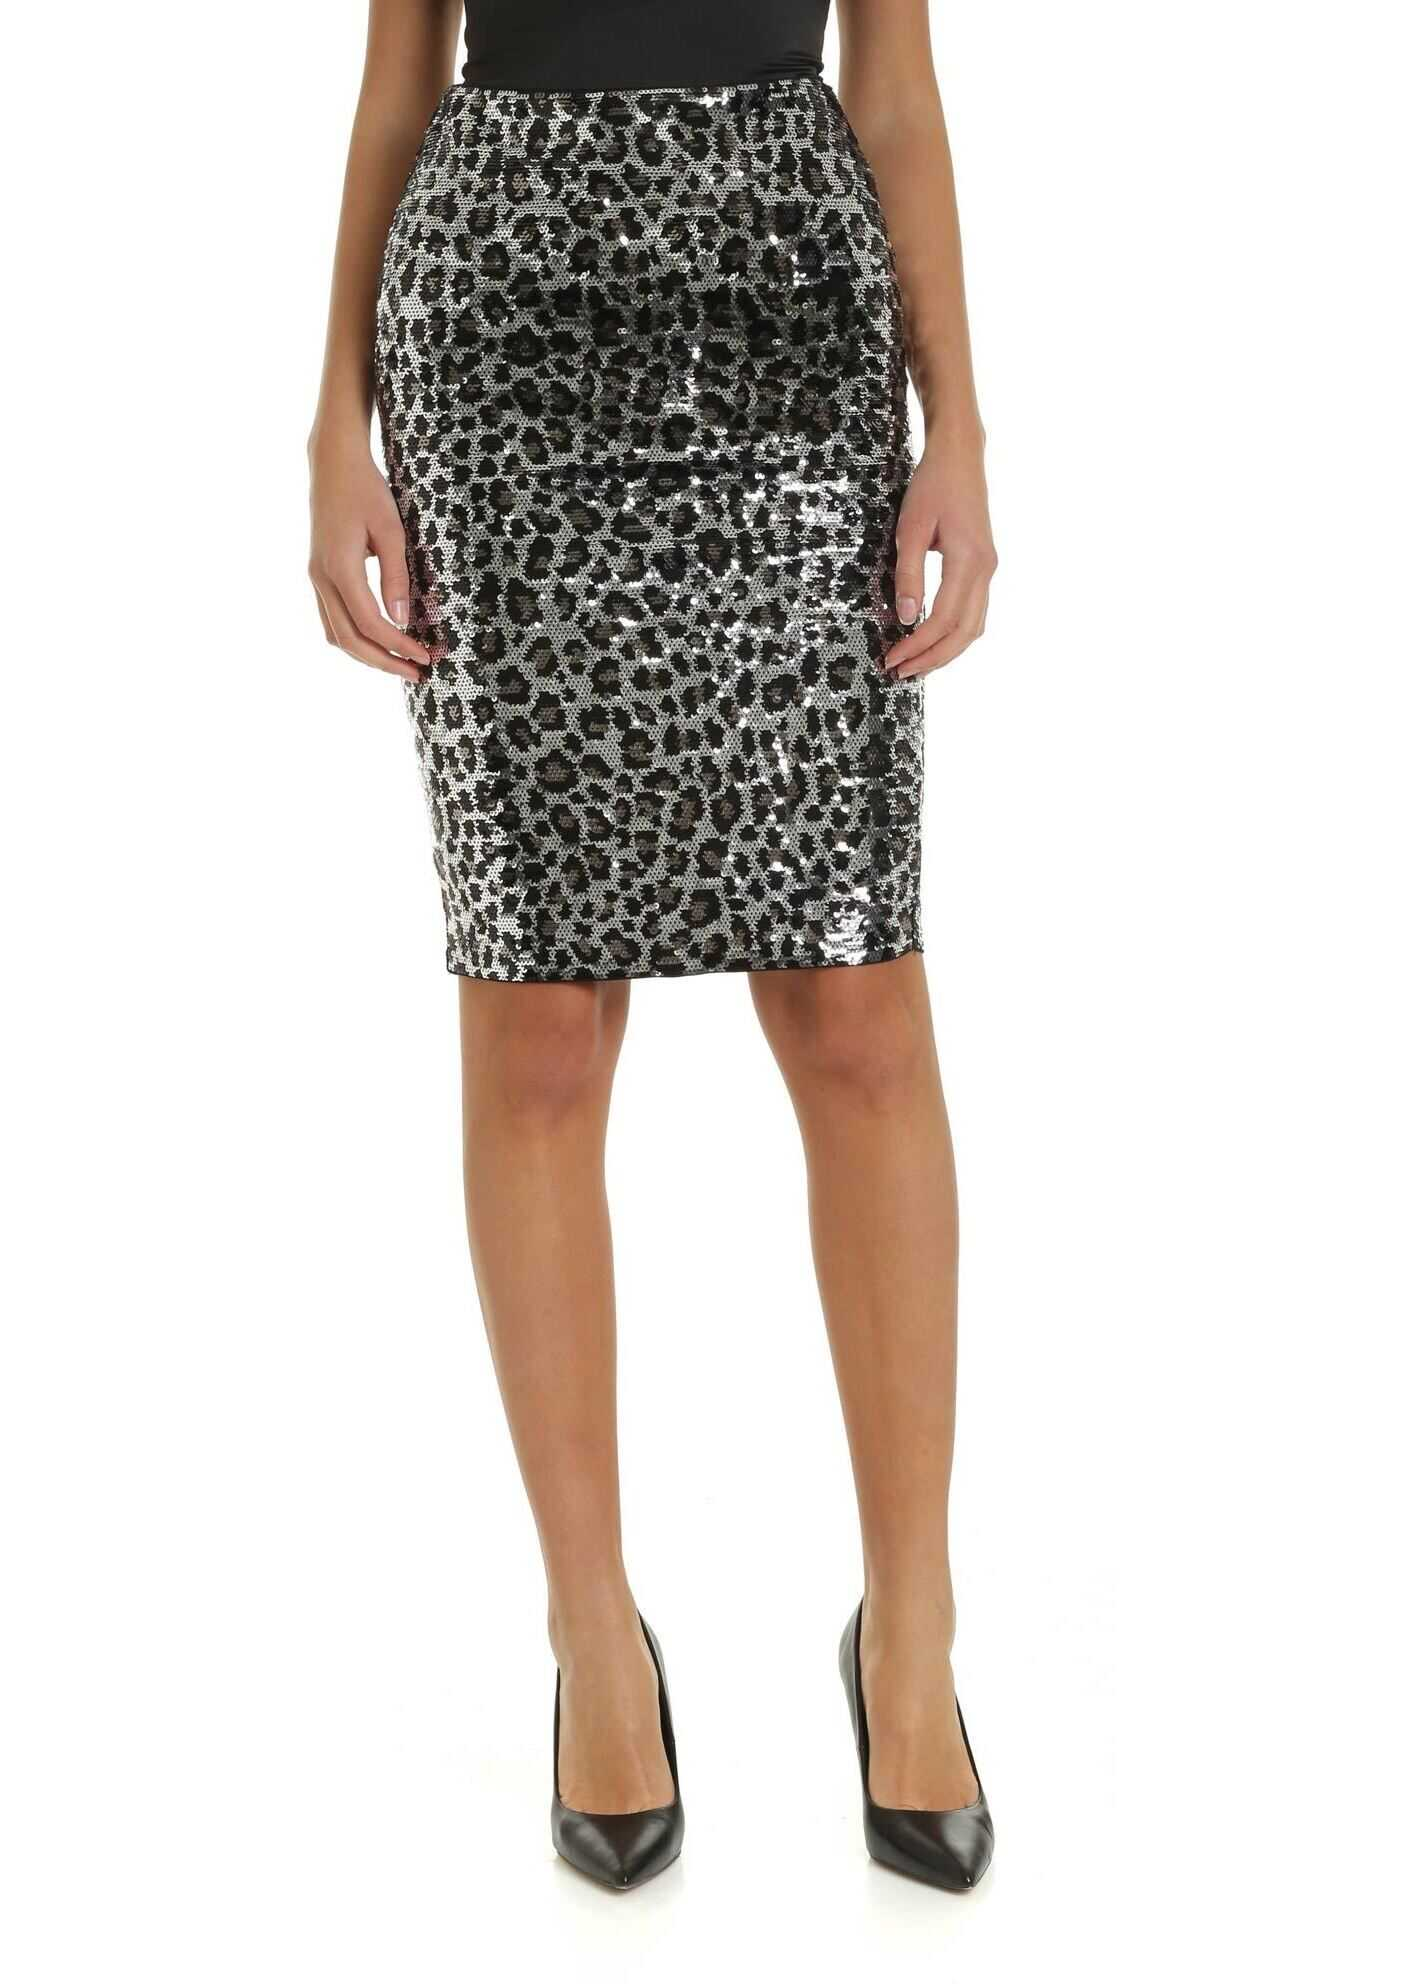 Michael Kors Animal Print Sequined Skirt Animal print